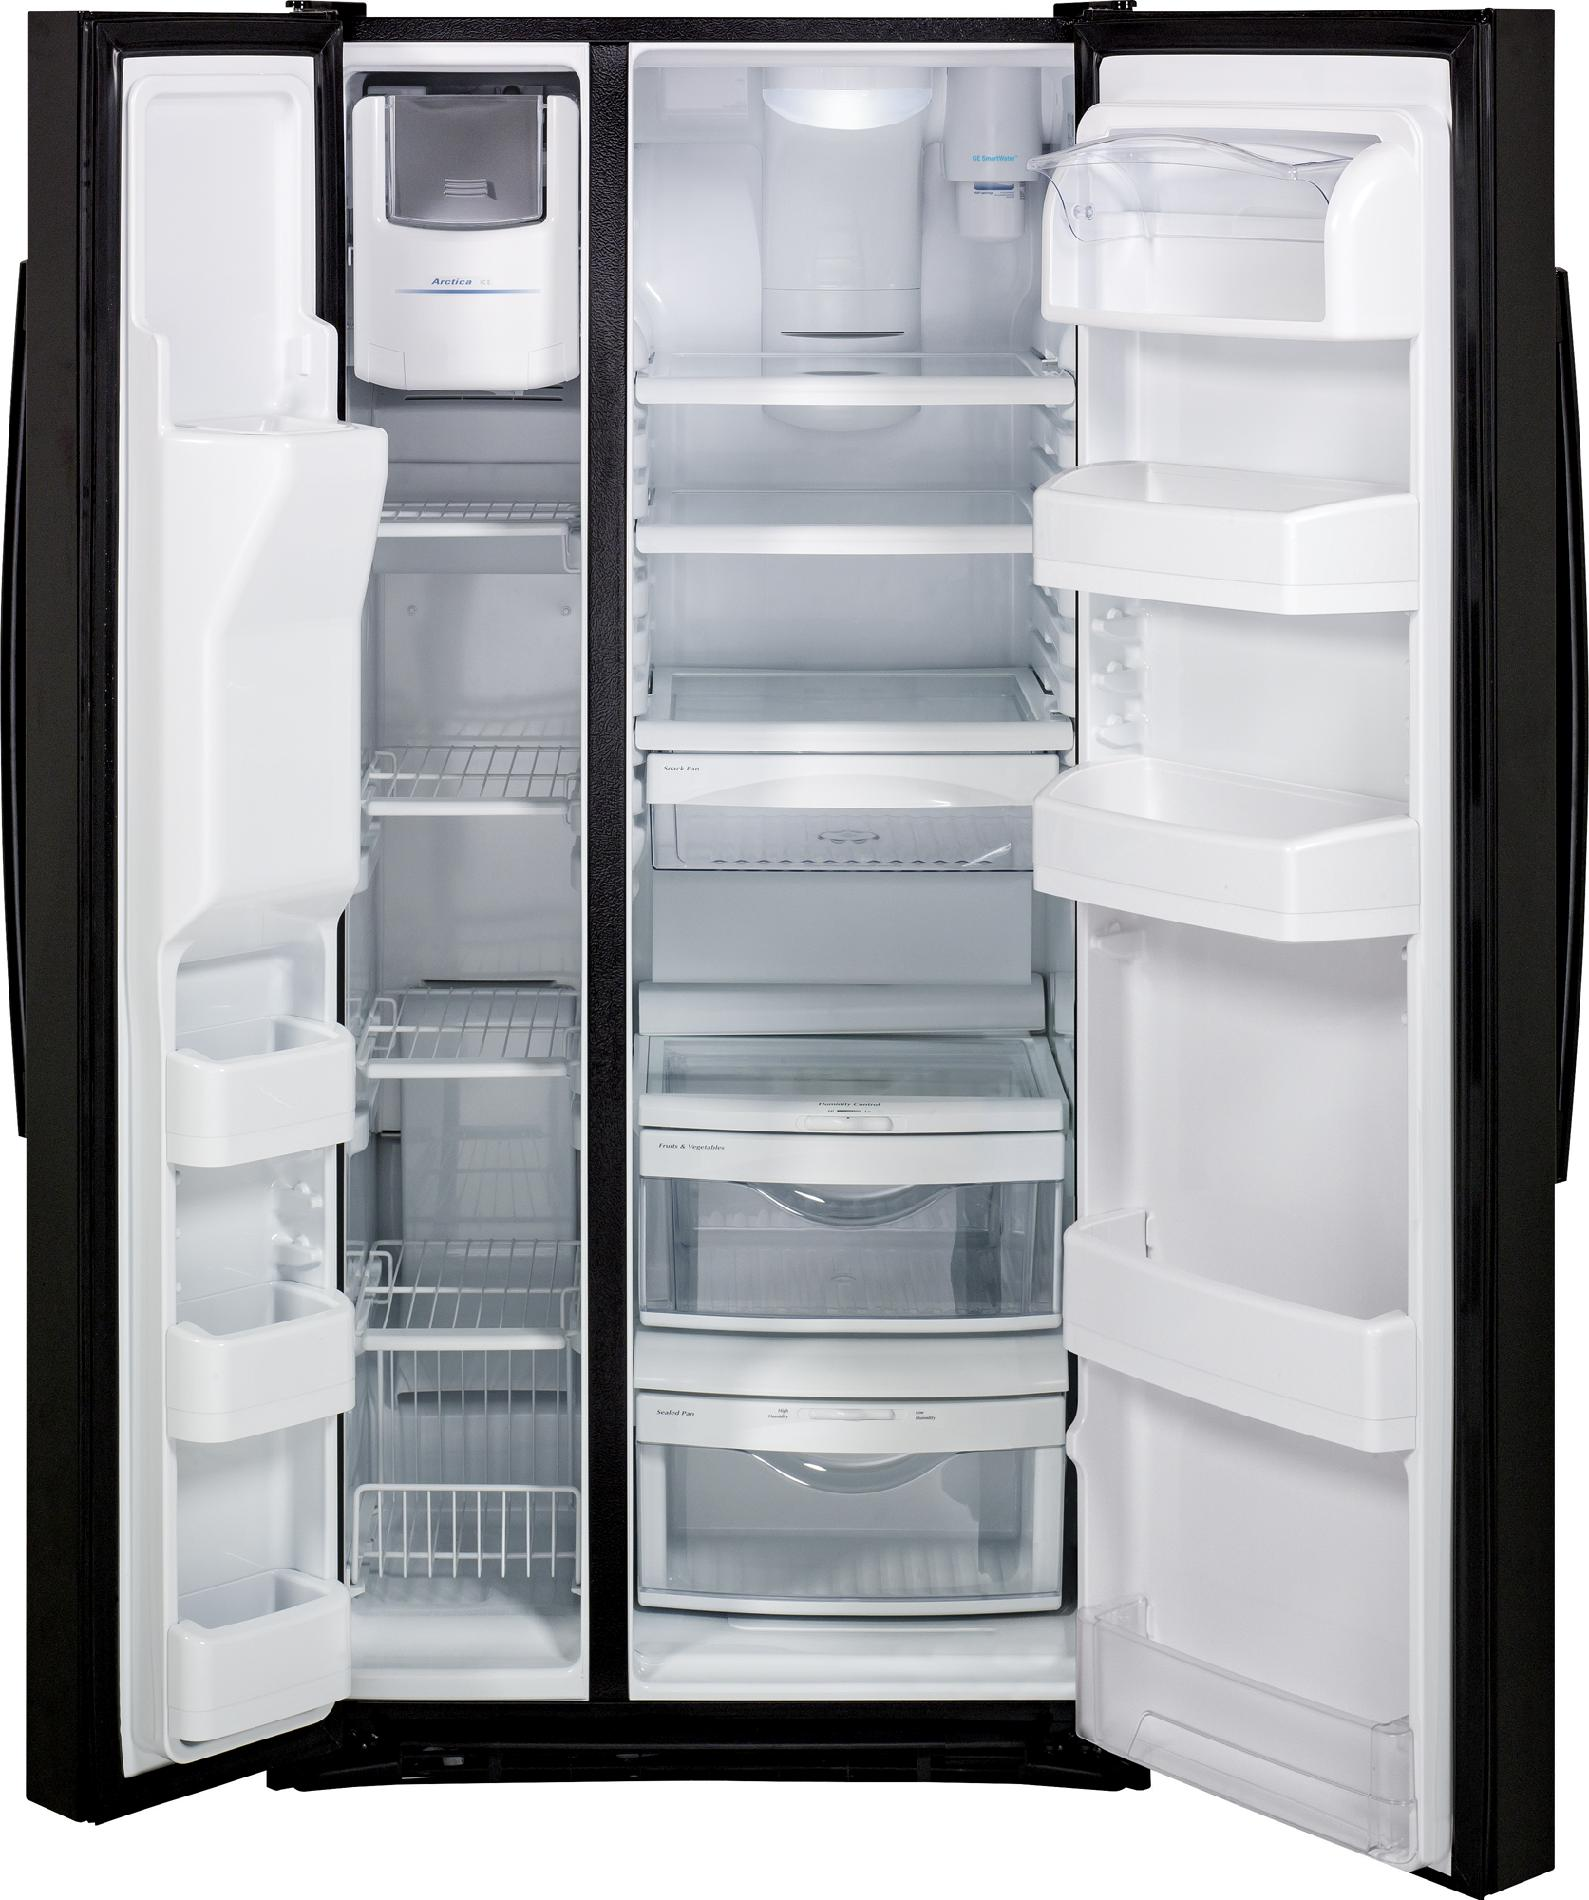 GE Appliances 23.1 cu. ft. Side-By-Side Refrigerator w/ Dispenser - Black